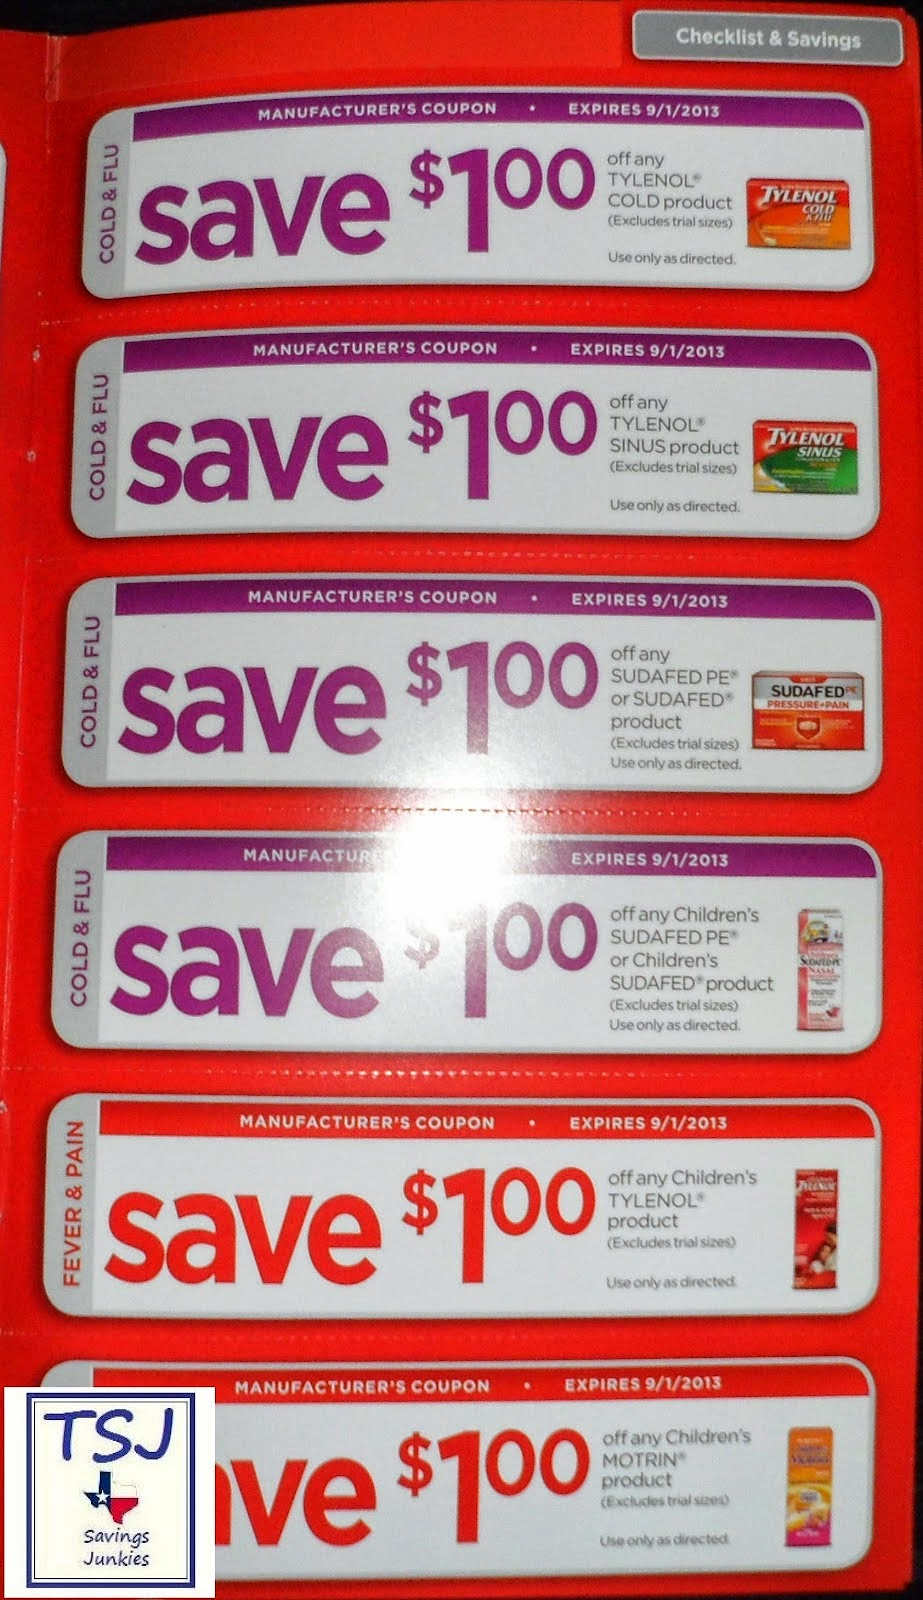 Walgreens in store coupons